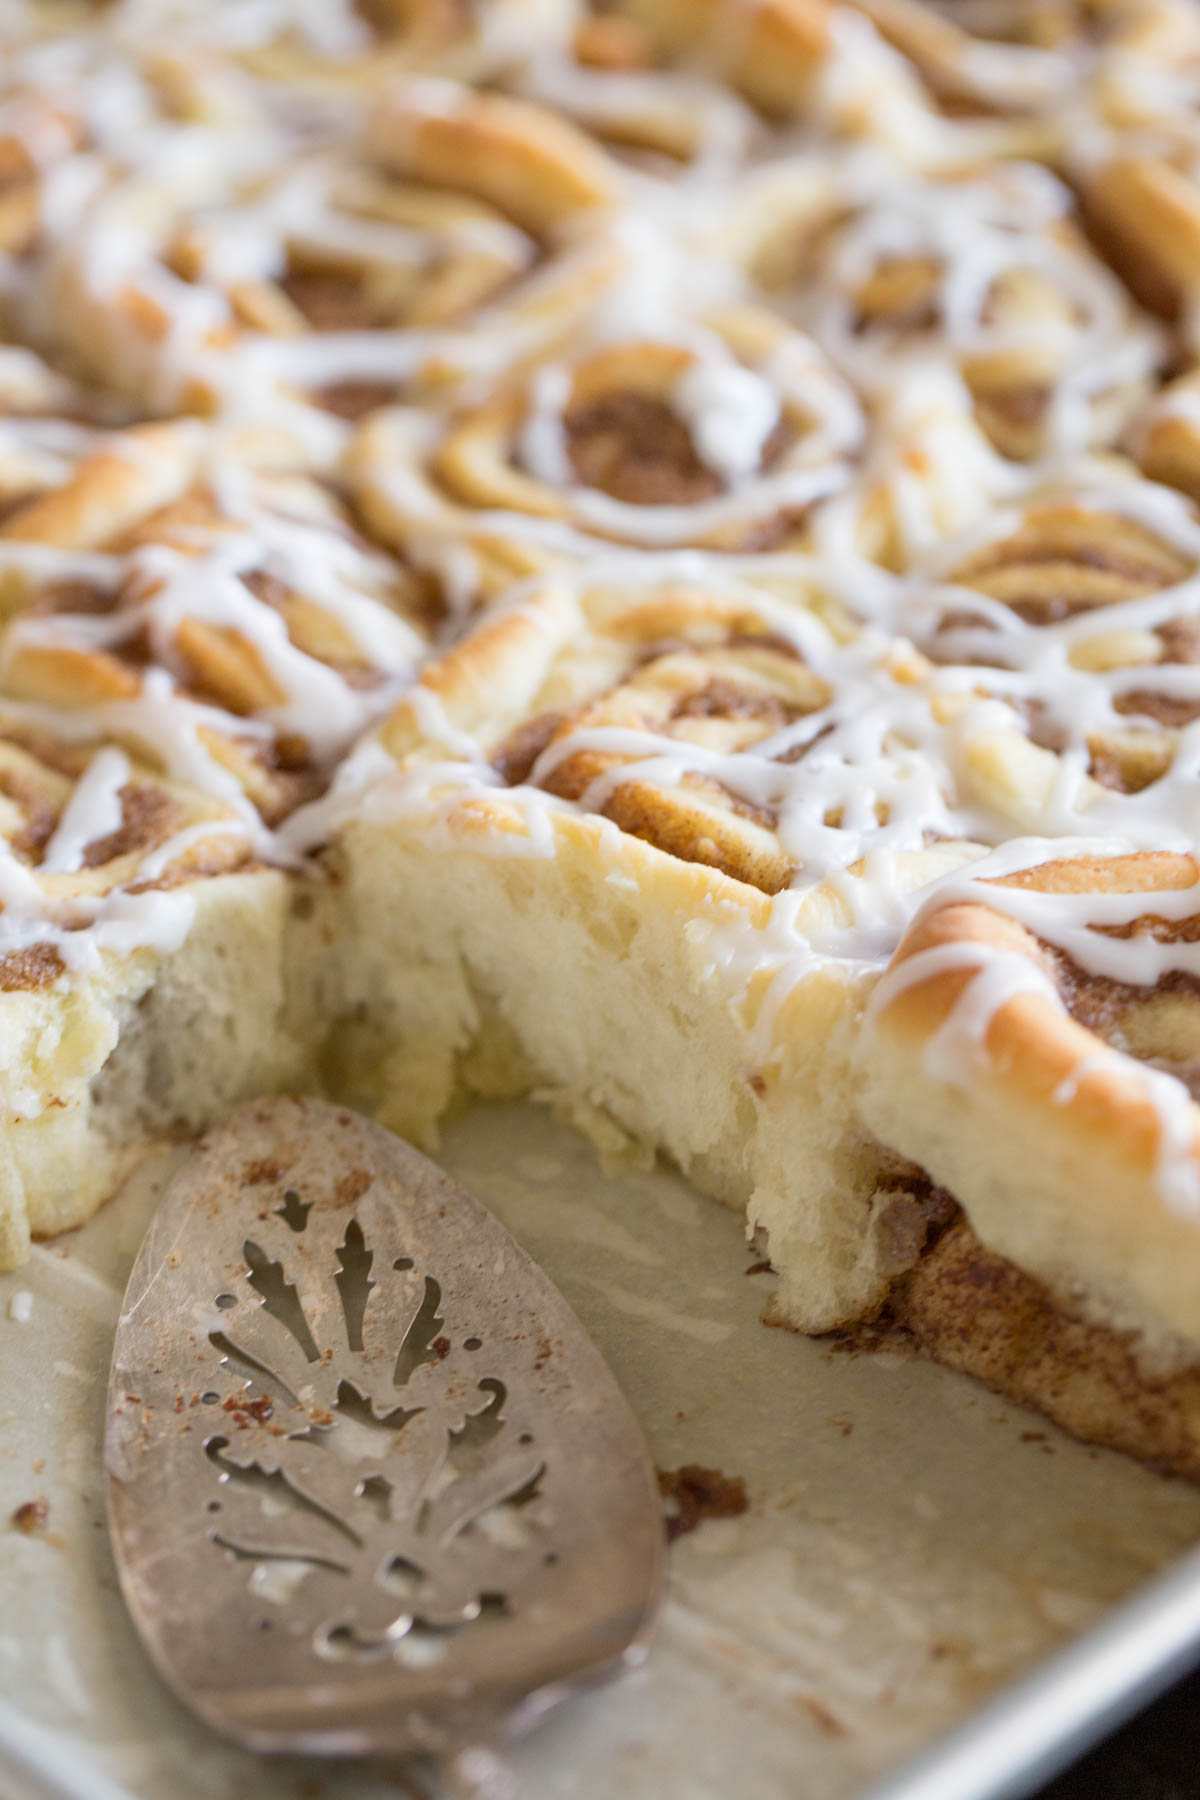 Sheet Pan Cinnamon Rolls in the baking sheet with a serving utensil and some of the rolls missing.